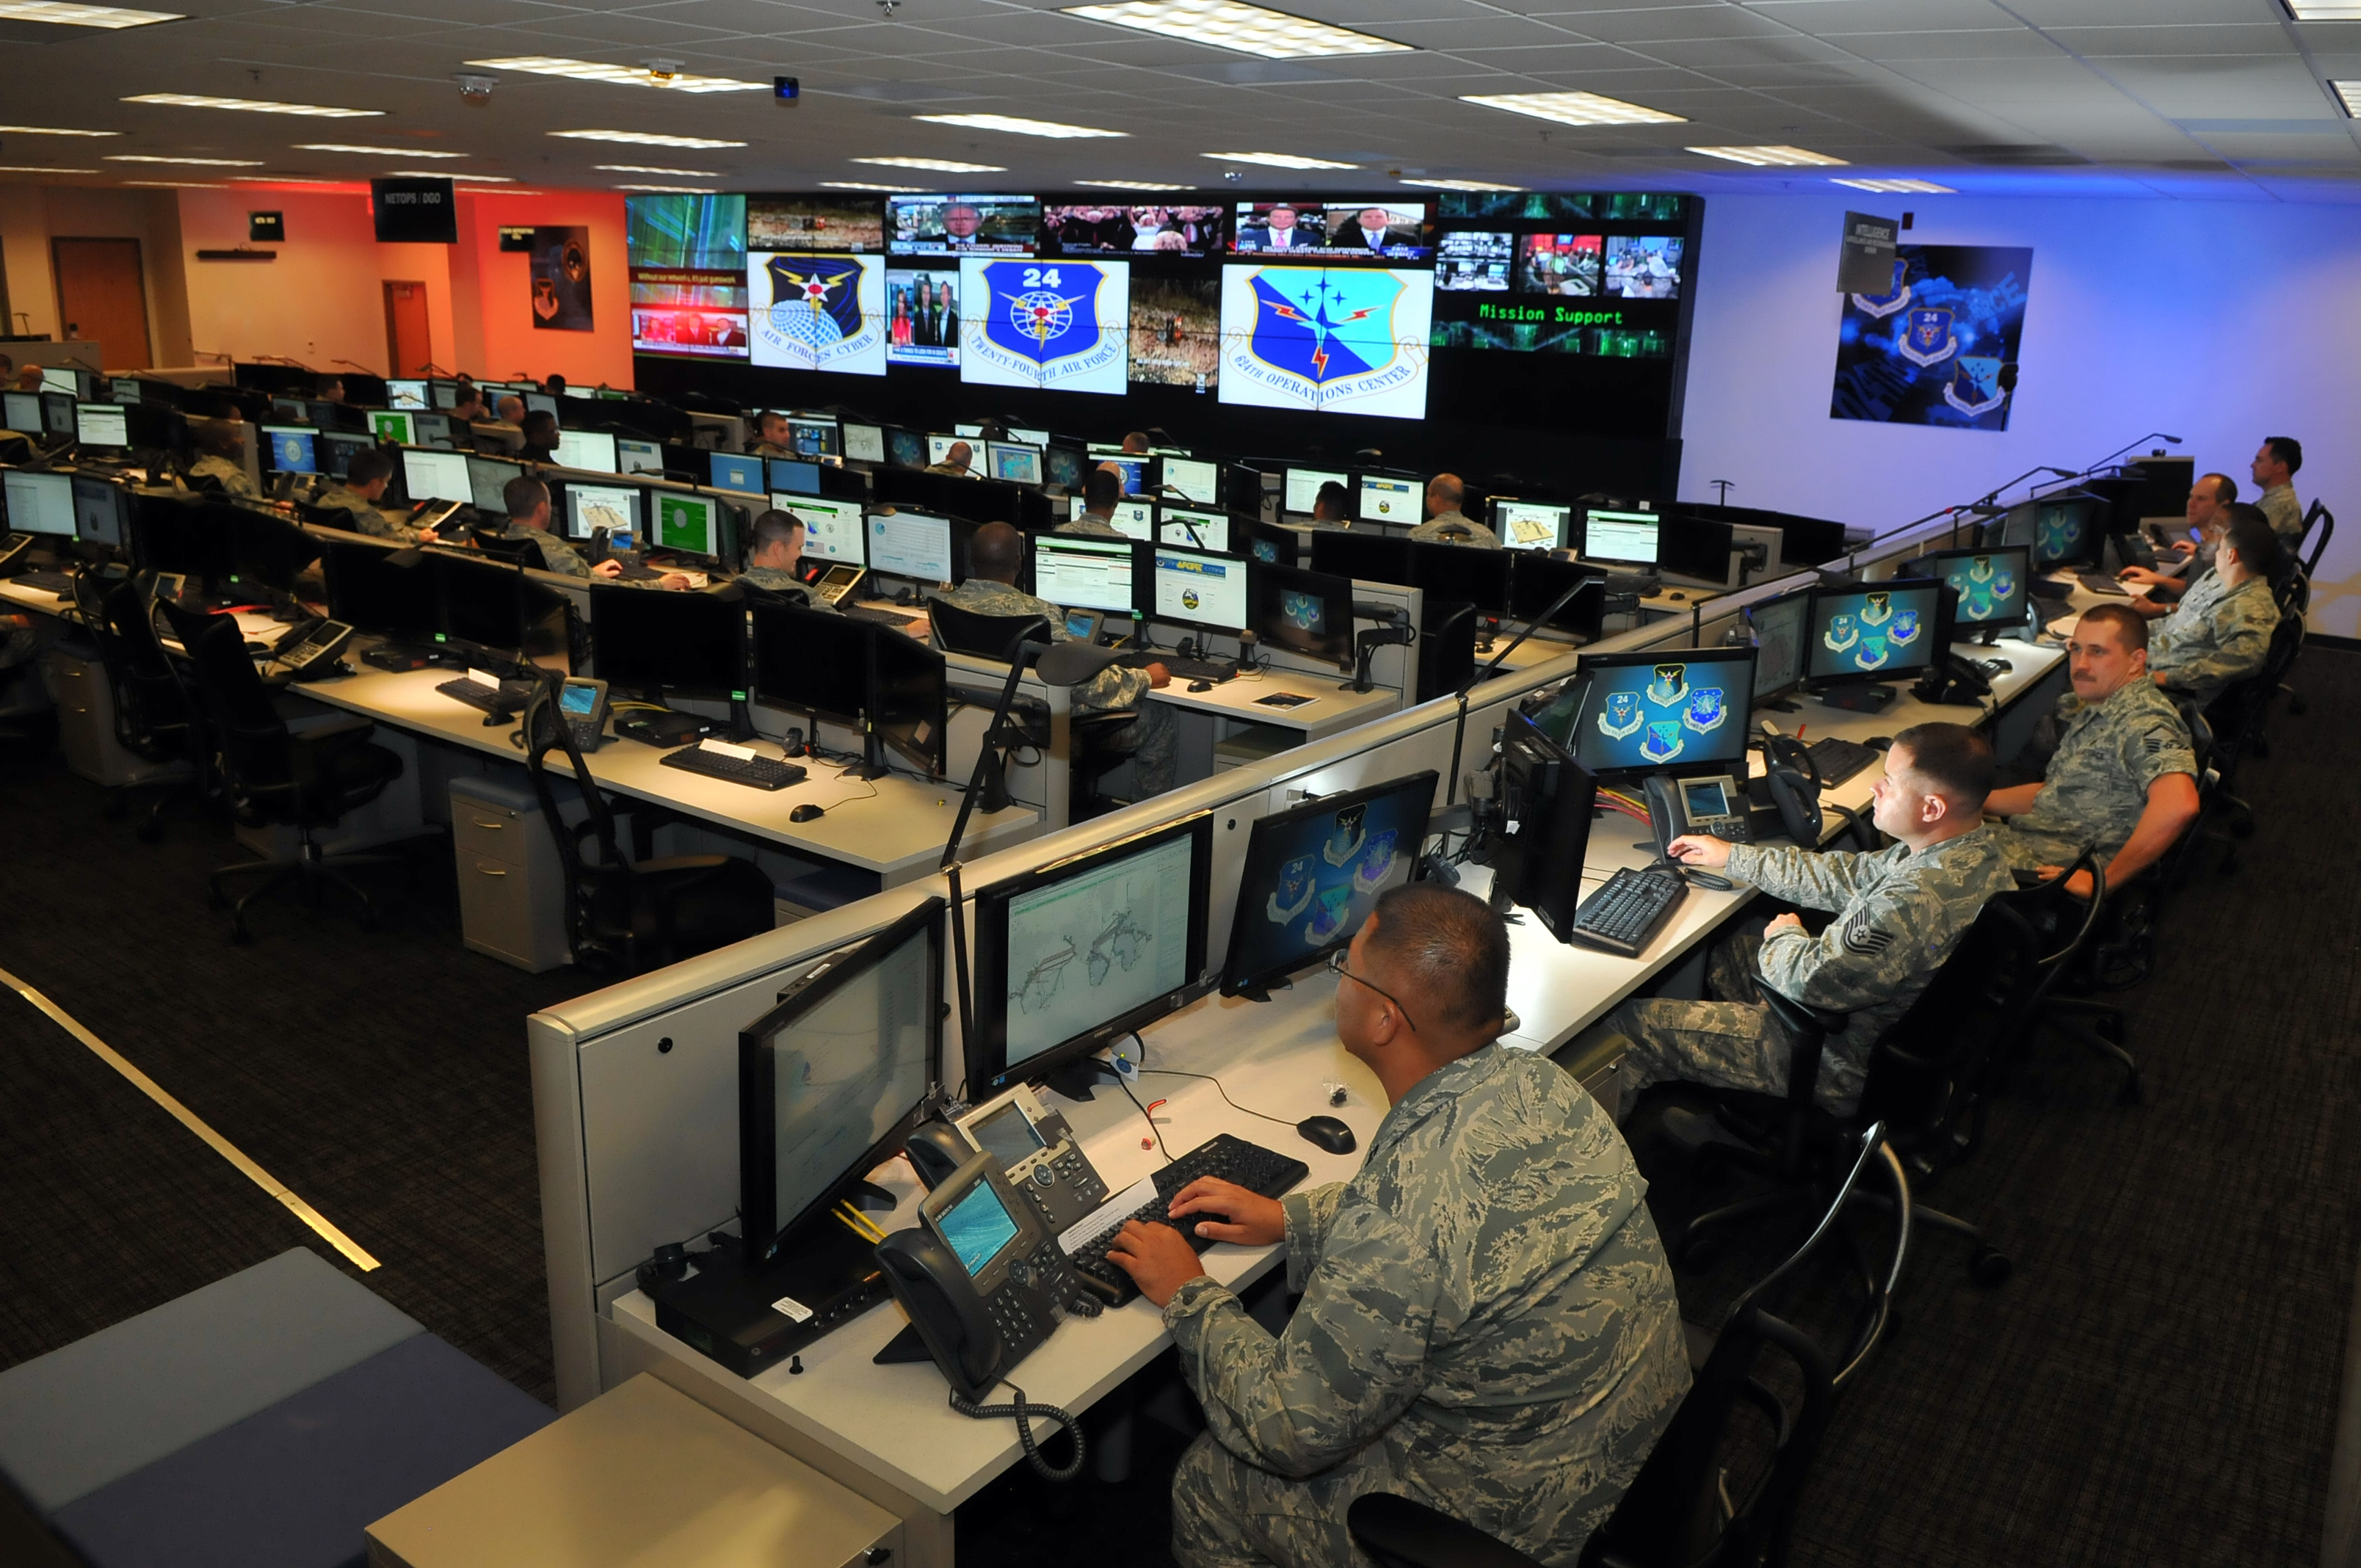 One top official believes the physical world is not analogous to the cyber world. (William Belcher/Air Force)